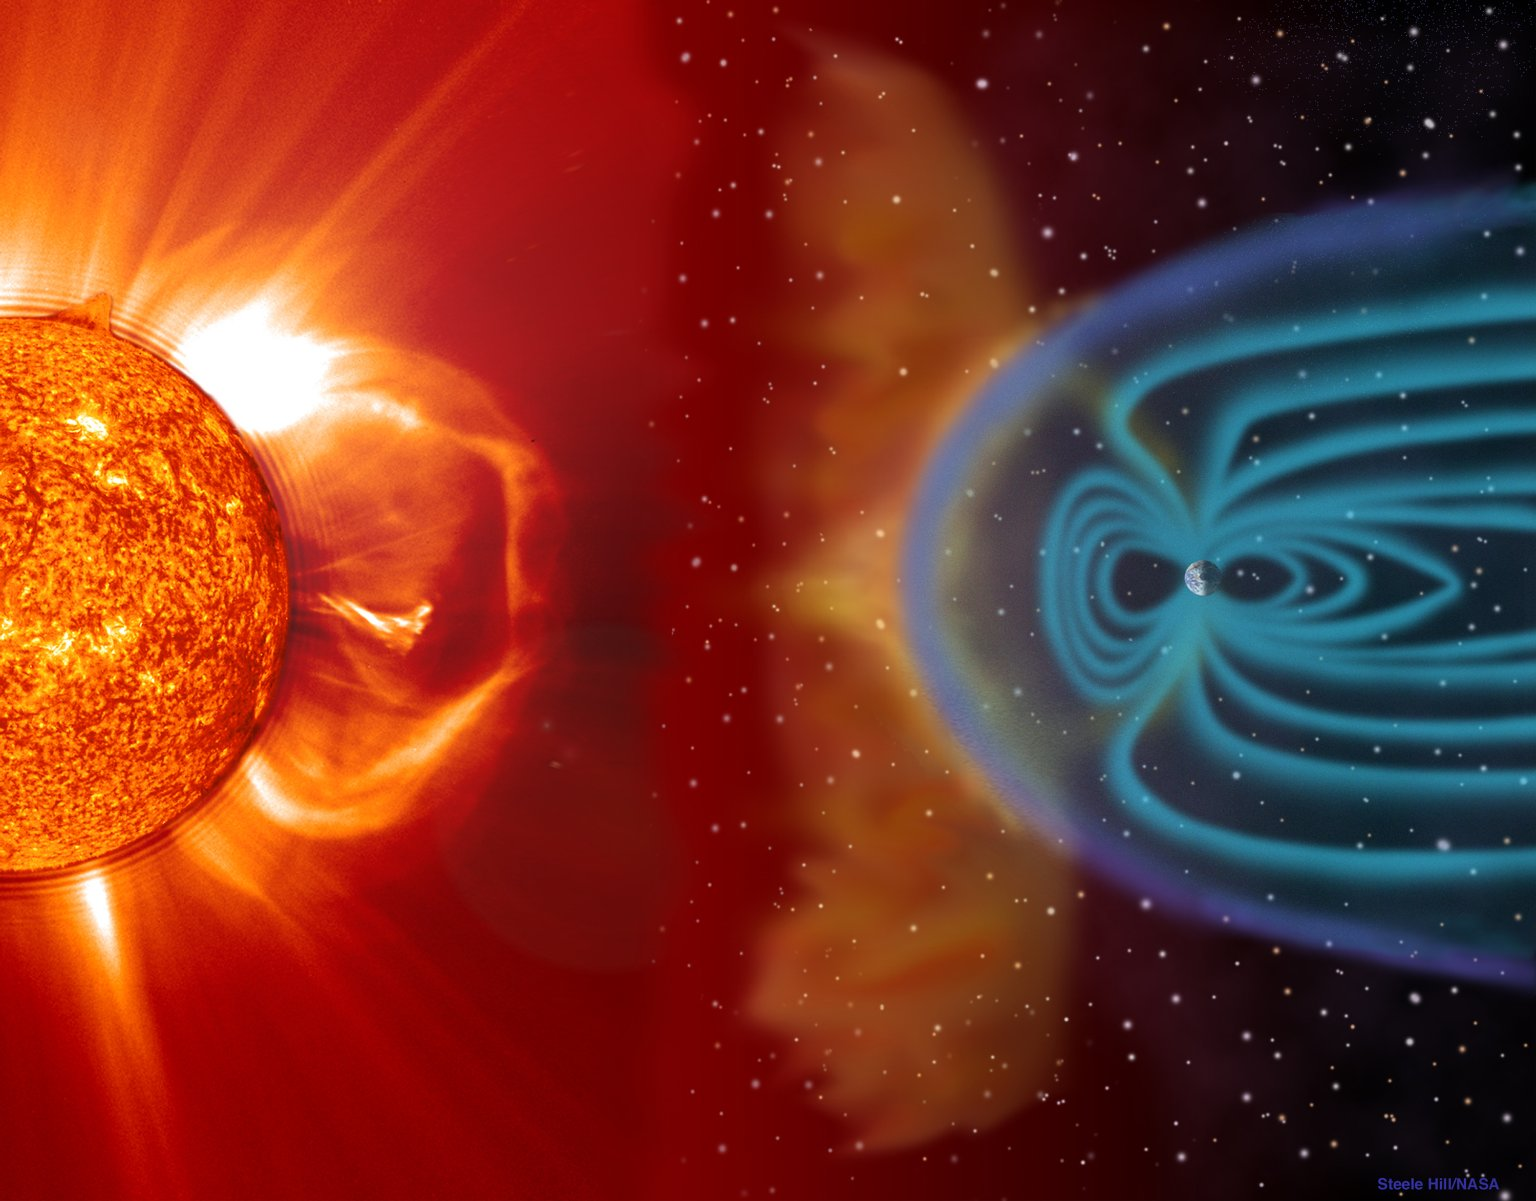 SPACE WEATHER illustration by NASA Images